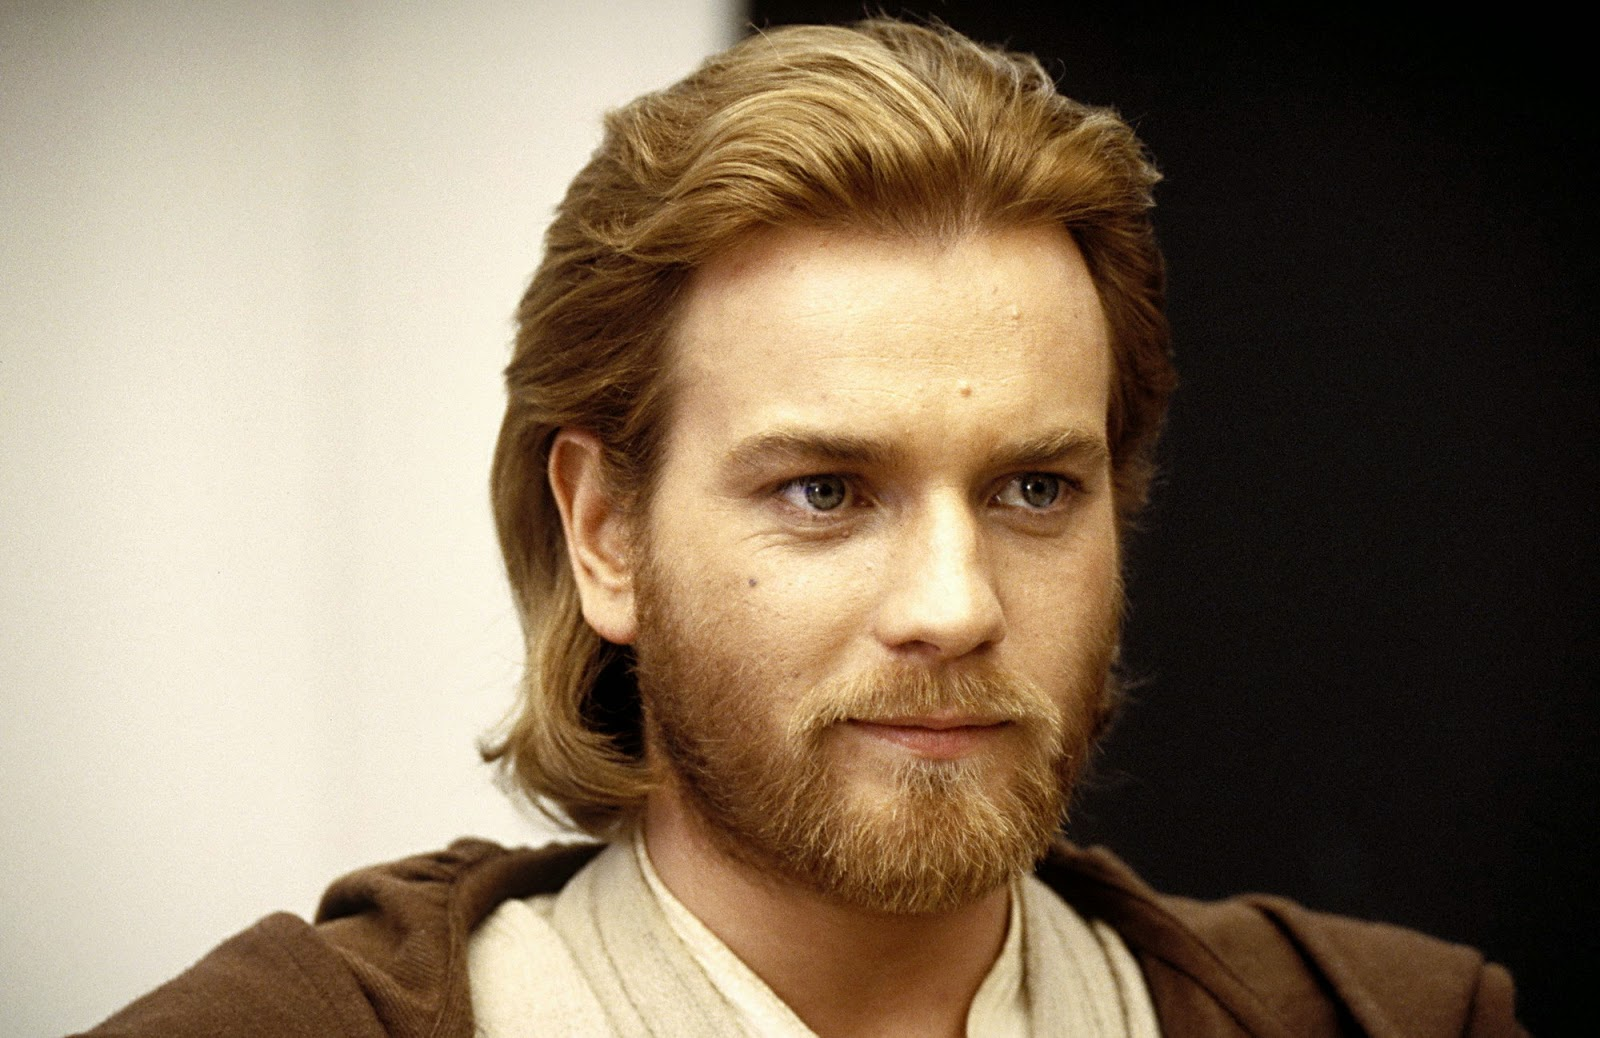 Scottish Actor Ewan McGregor With Beard Images